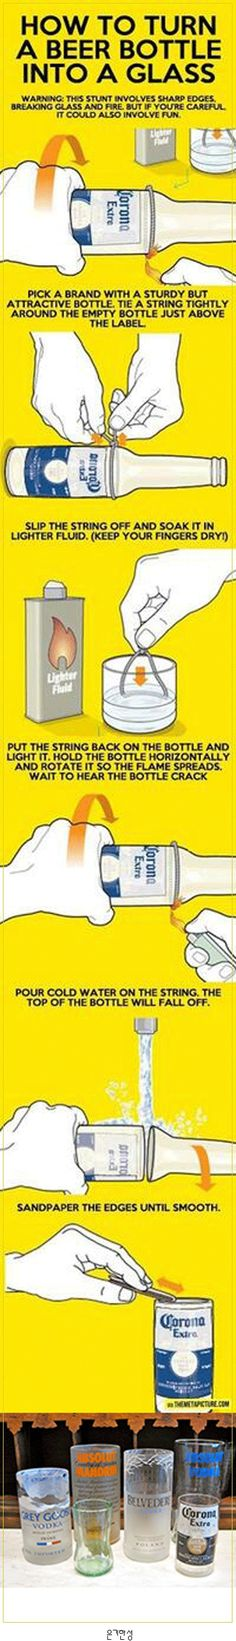 HOW TO TURN A BEER BOTTLE INTO A GLASS  맥주병으로 유리컵 만들기